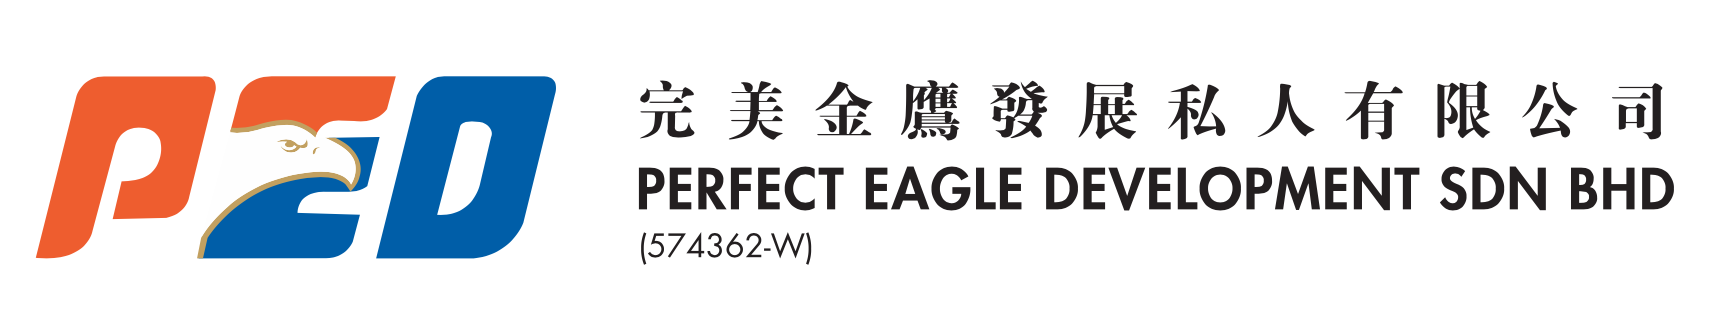 Developer of O2 City, Perfect Eagle Development Sdn Bhd